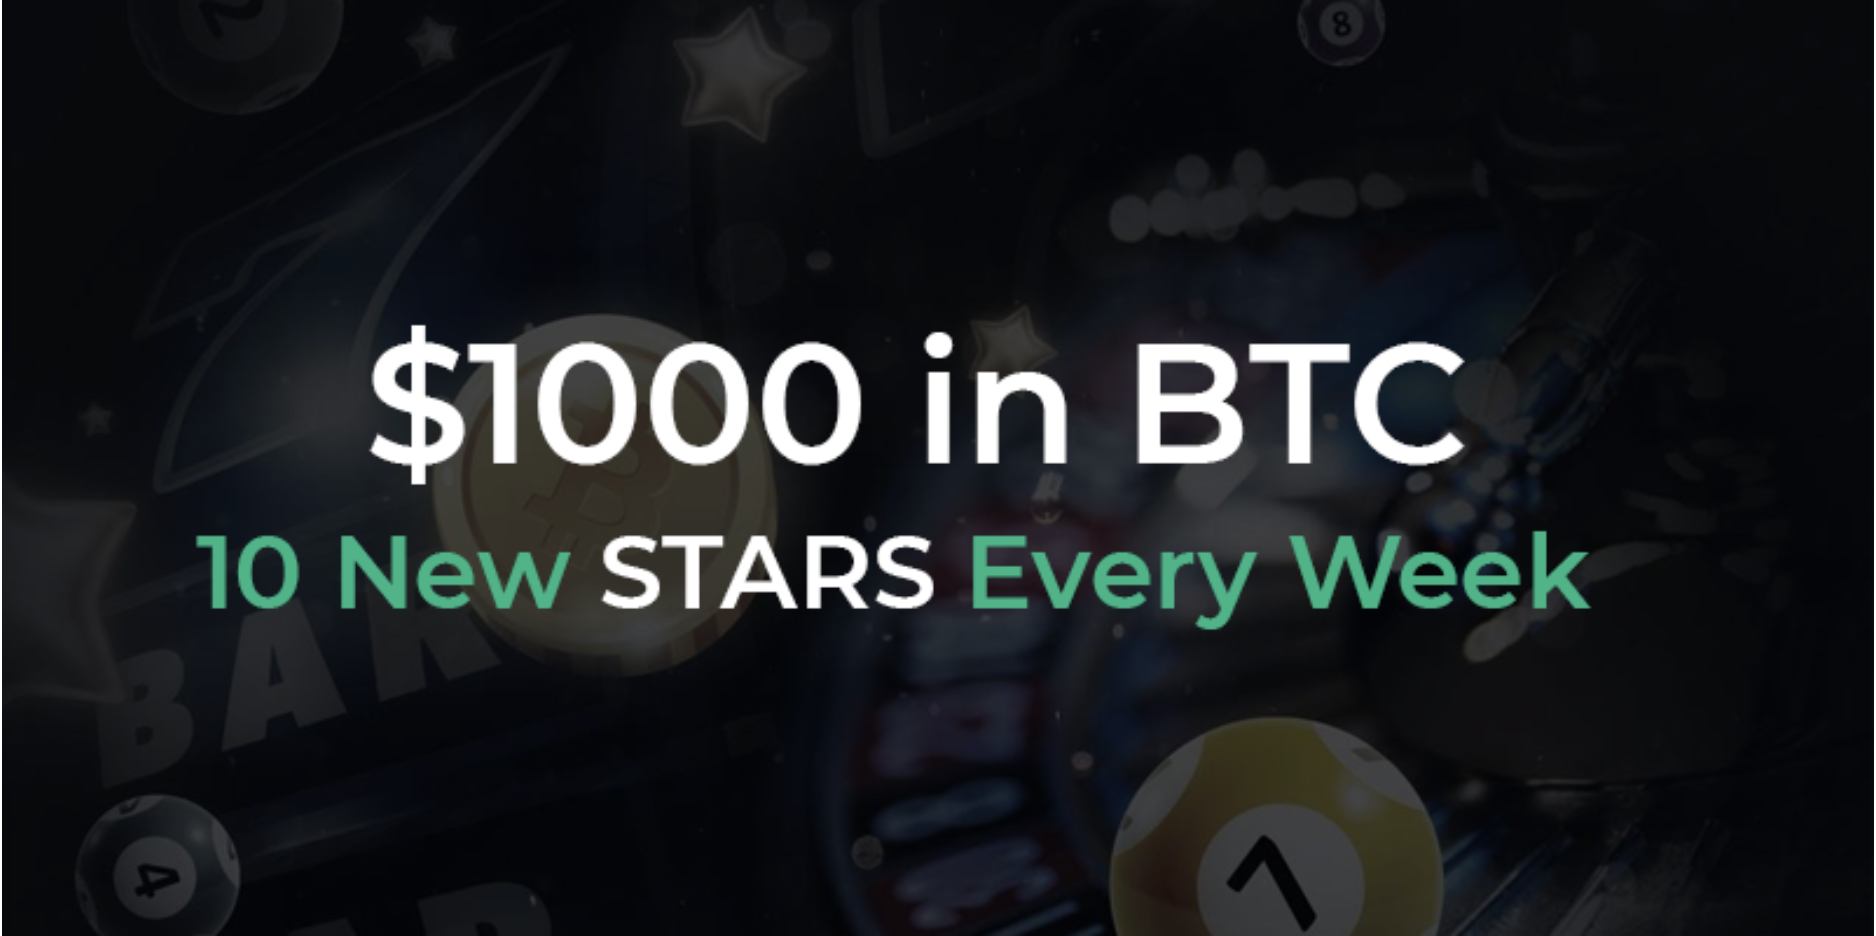 Bitscoins.net Launches Games Stars Leaderboard – Win BTC Every Week